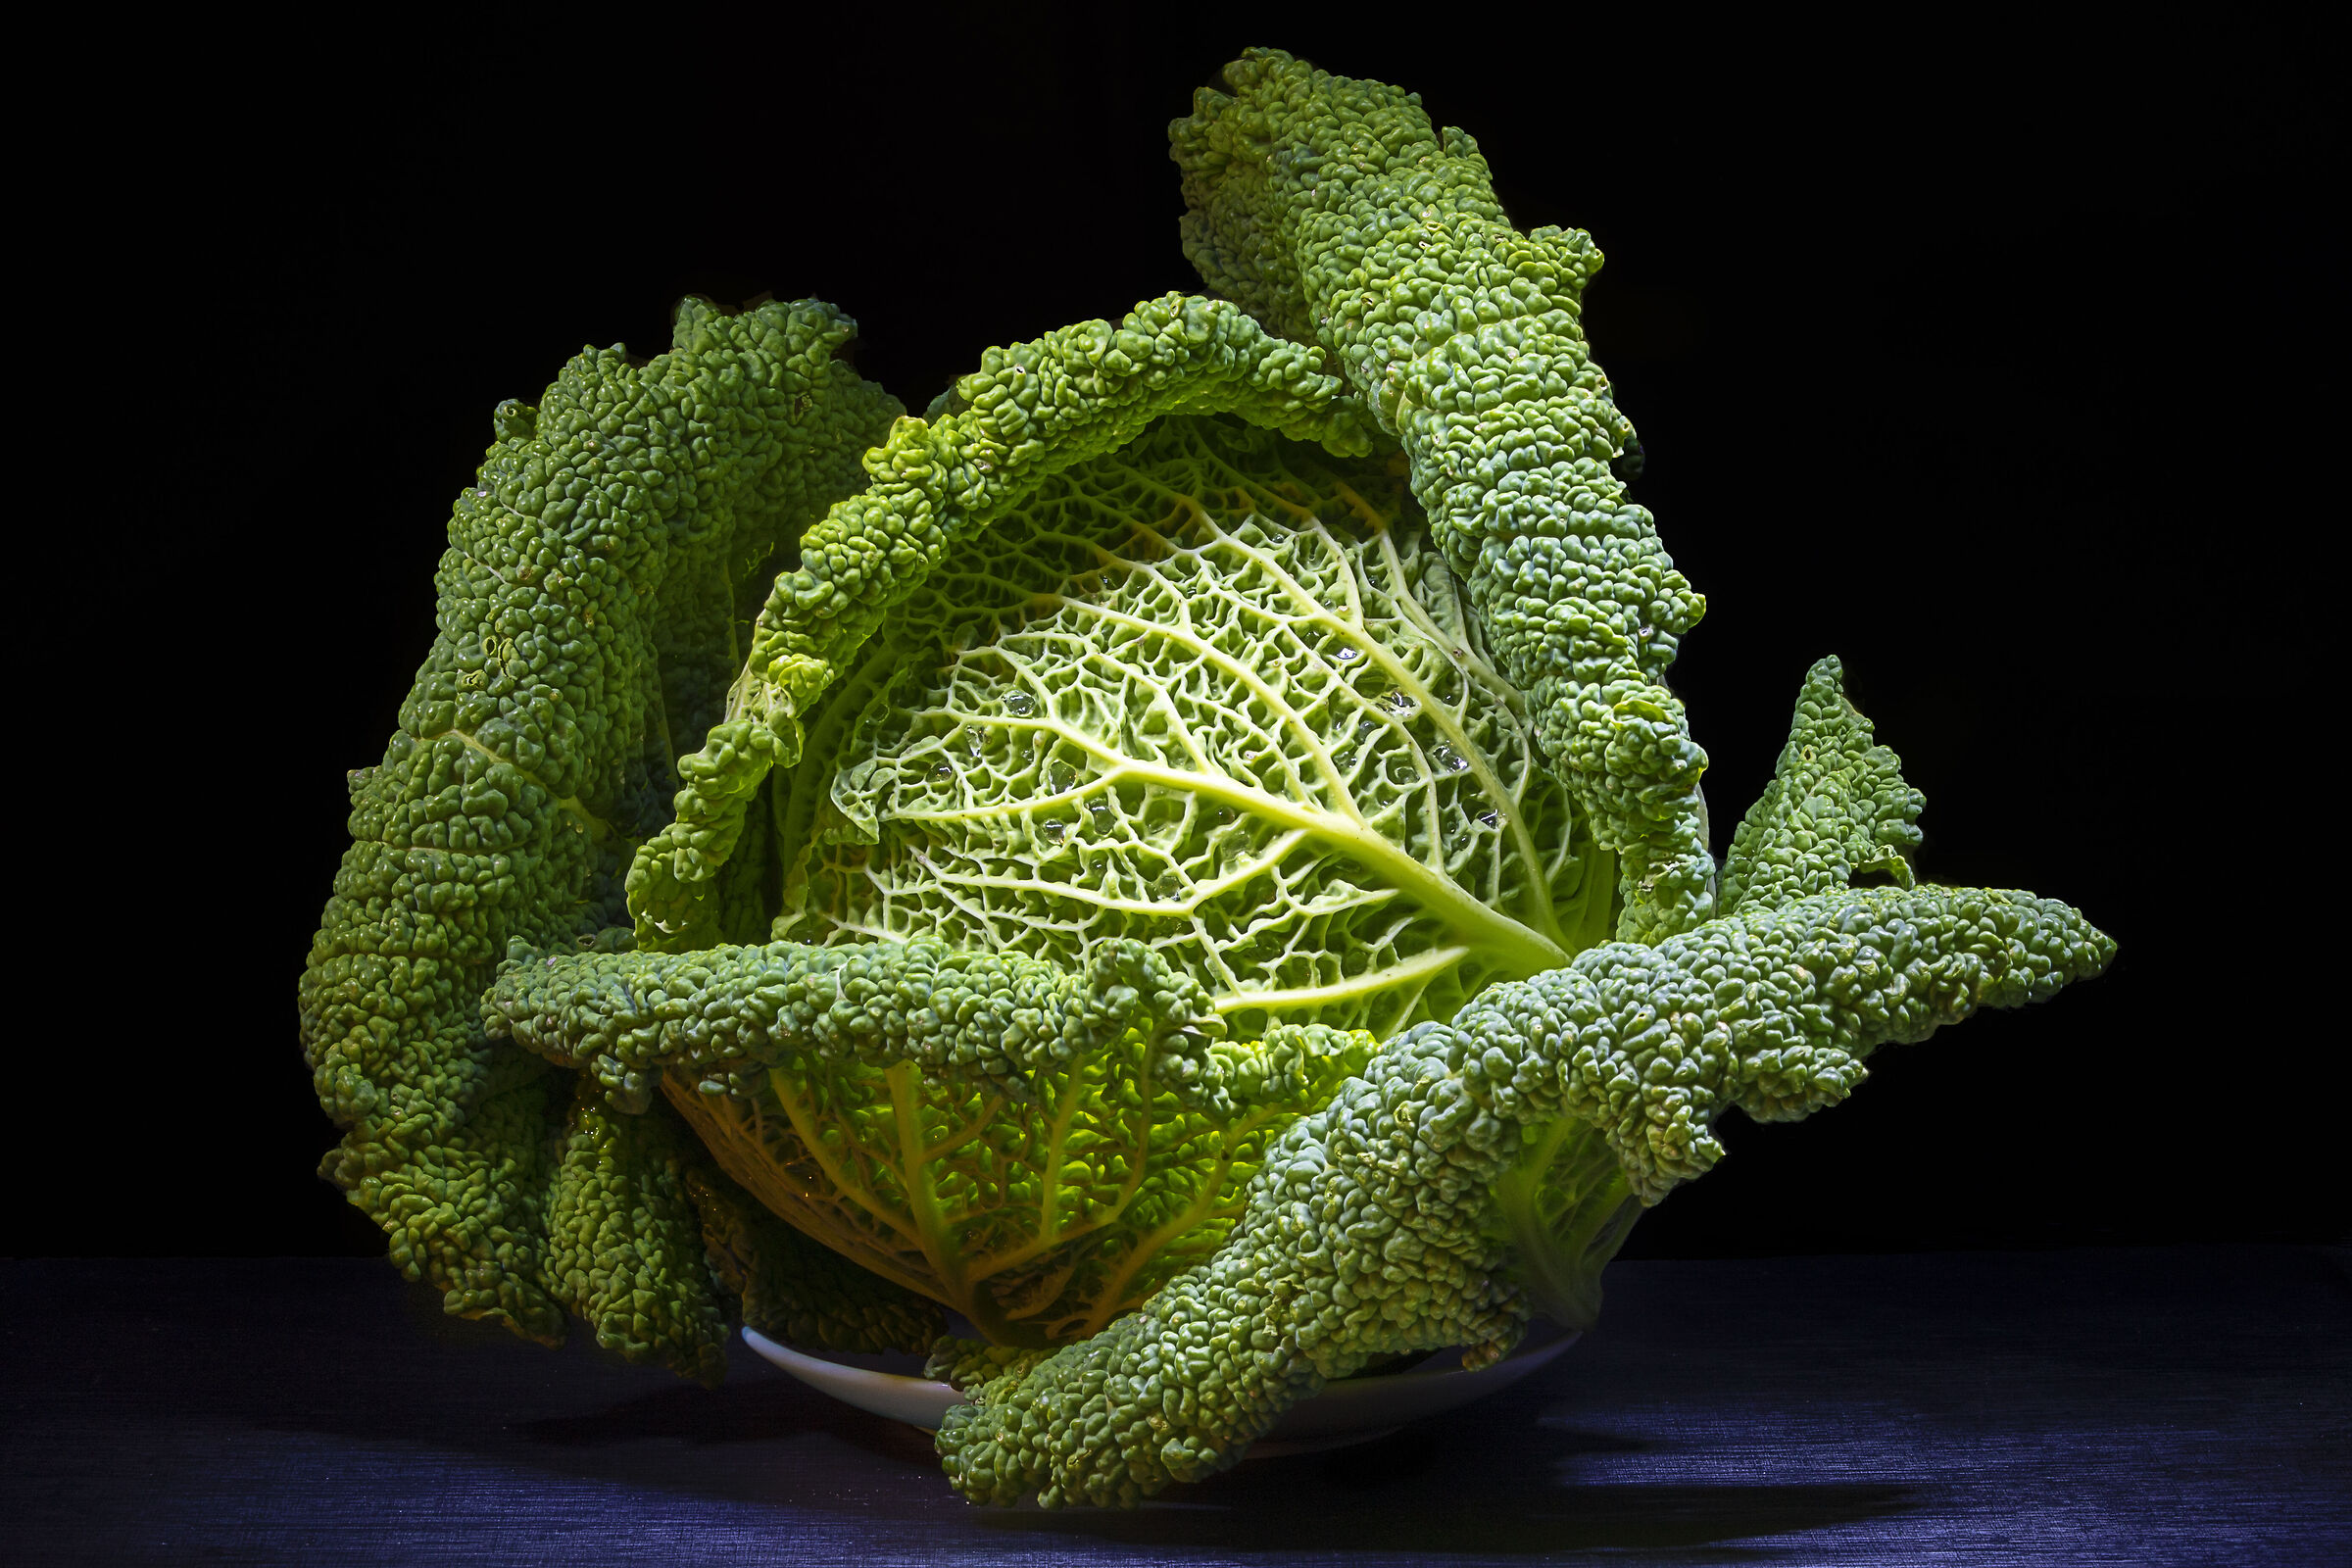 A cabbage to photograph...